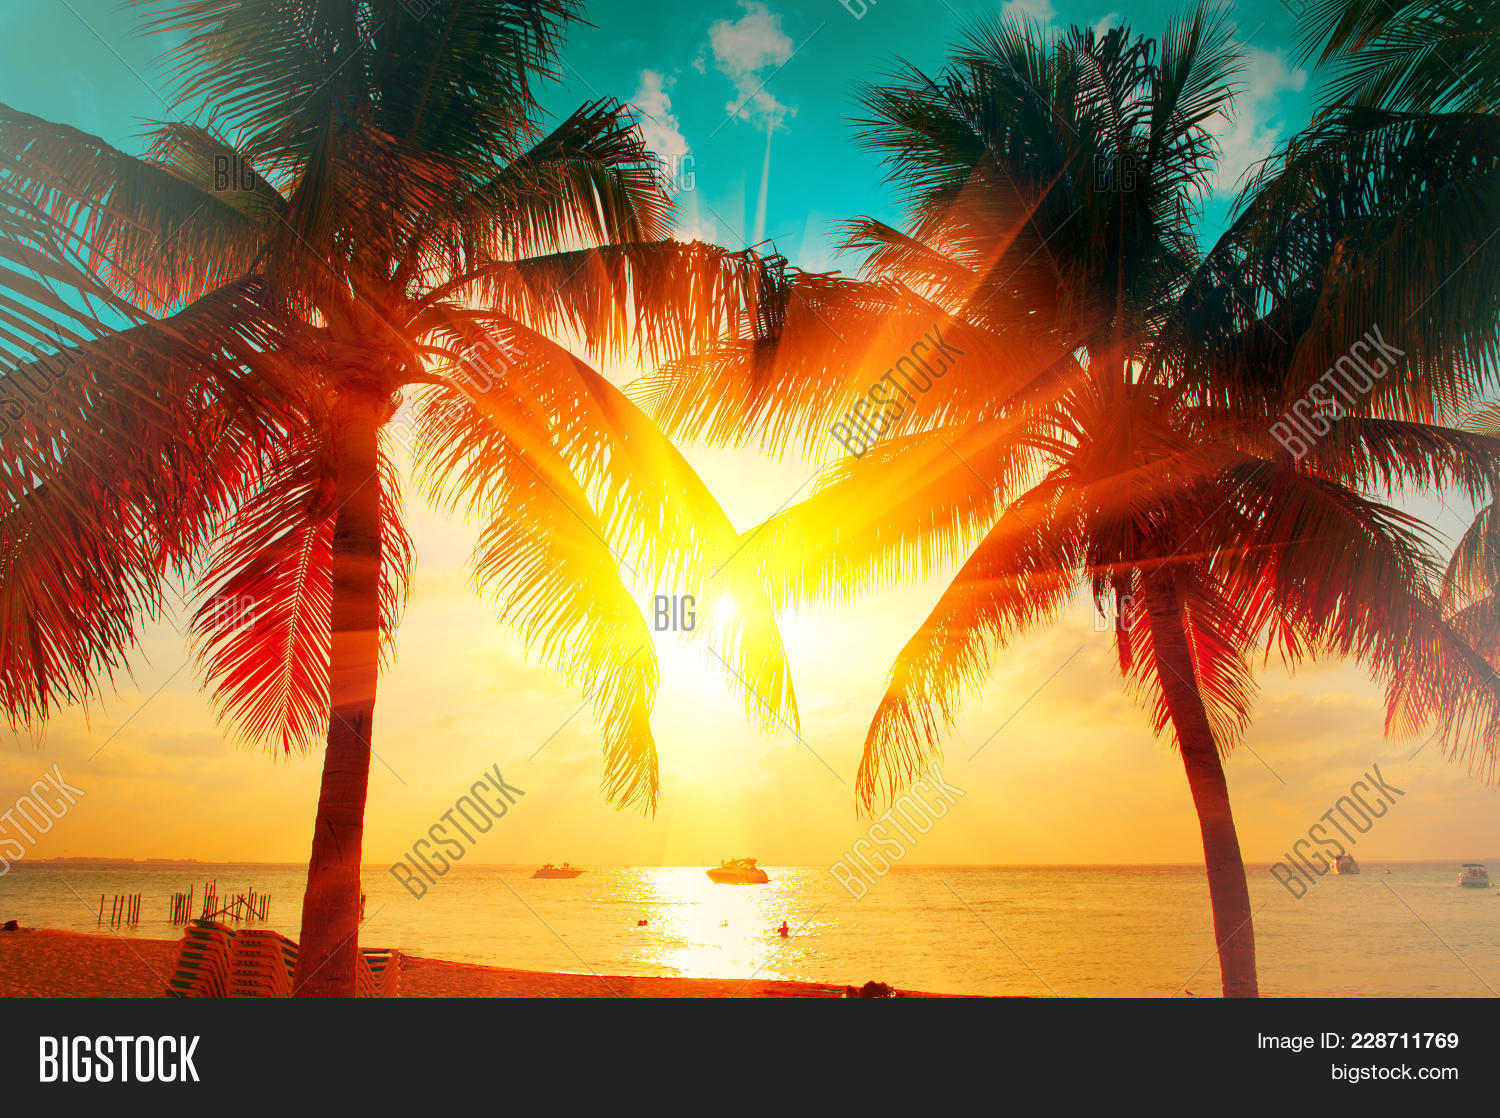 Sunset Beach With Palm Trees And Beautiful Sky Landscape Travel Tourism Vacation Concept